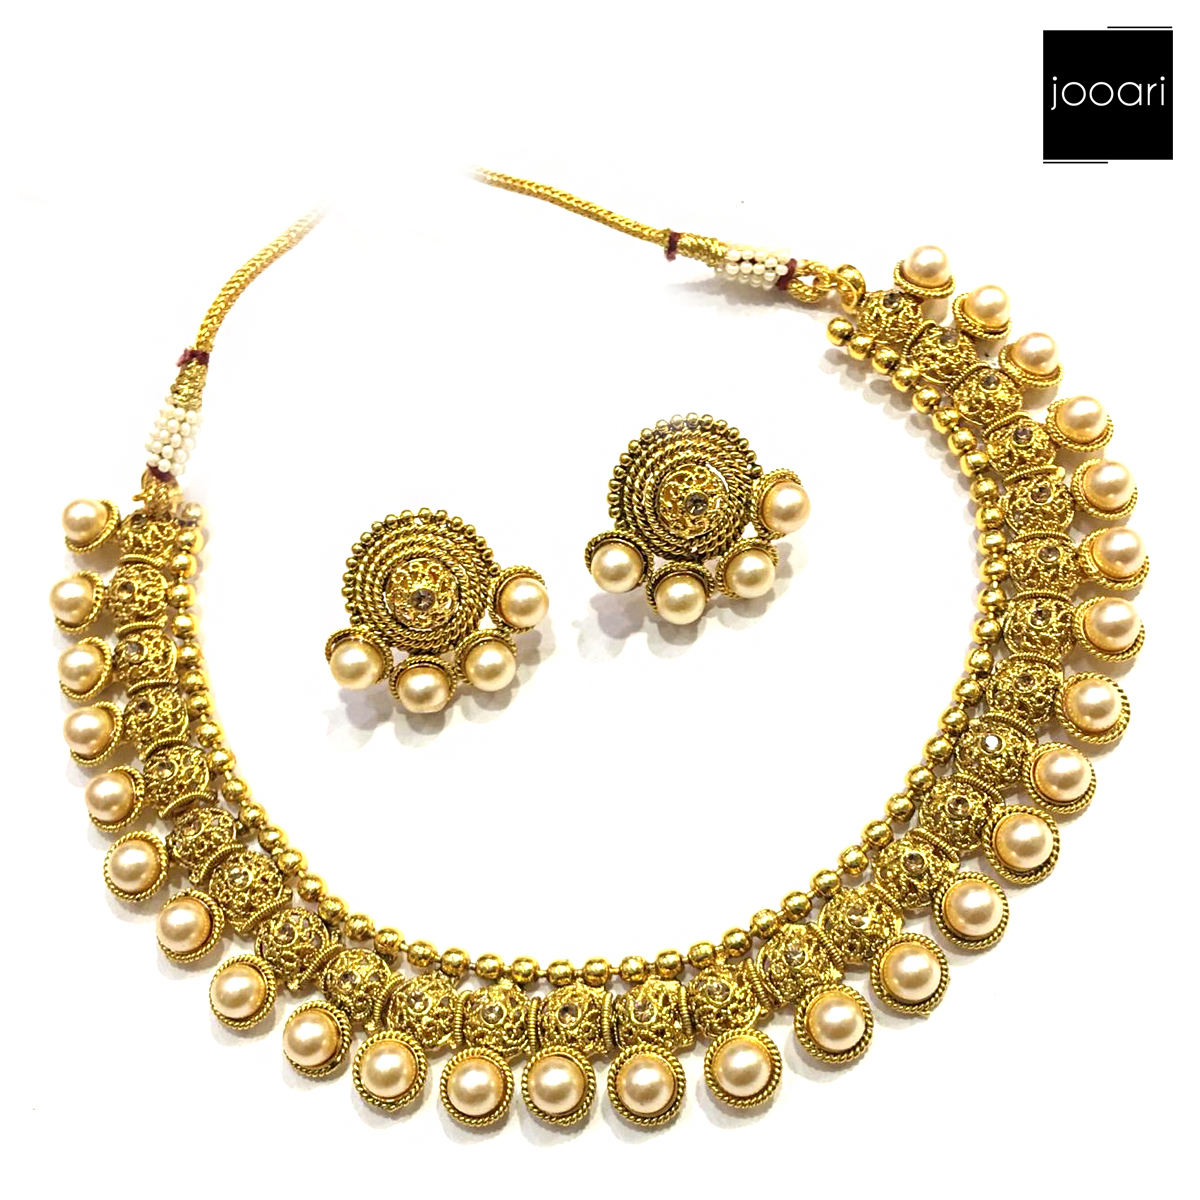 New Antique Gold Pearl Pure Copper Designer Necklace Set with Earrings for Women and Girls